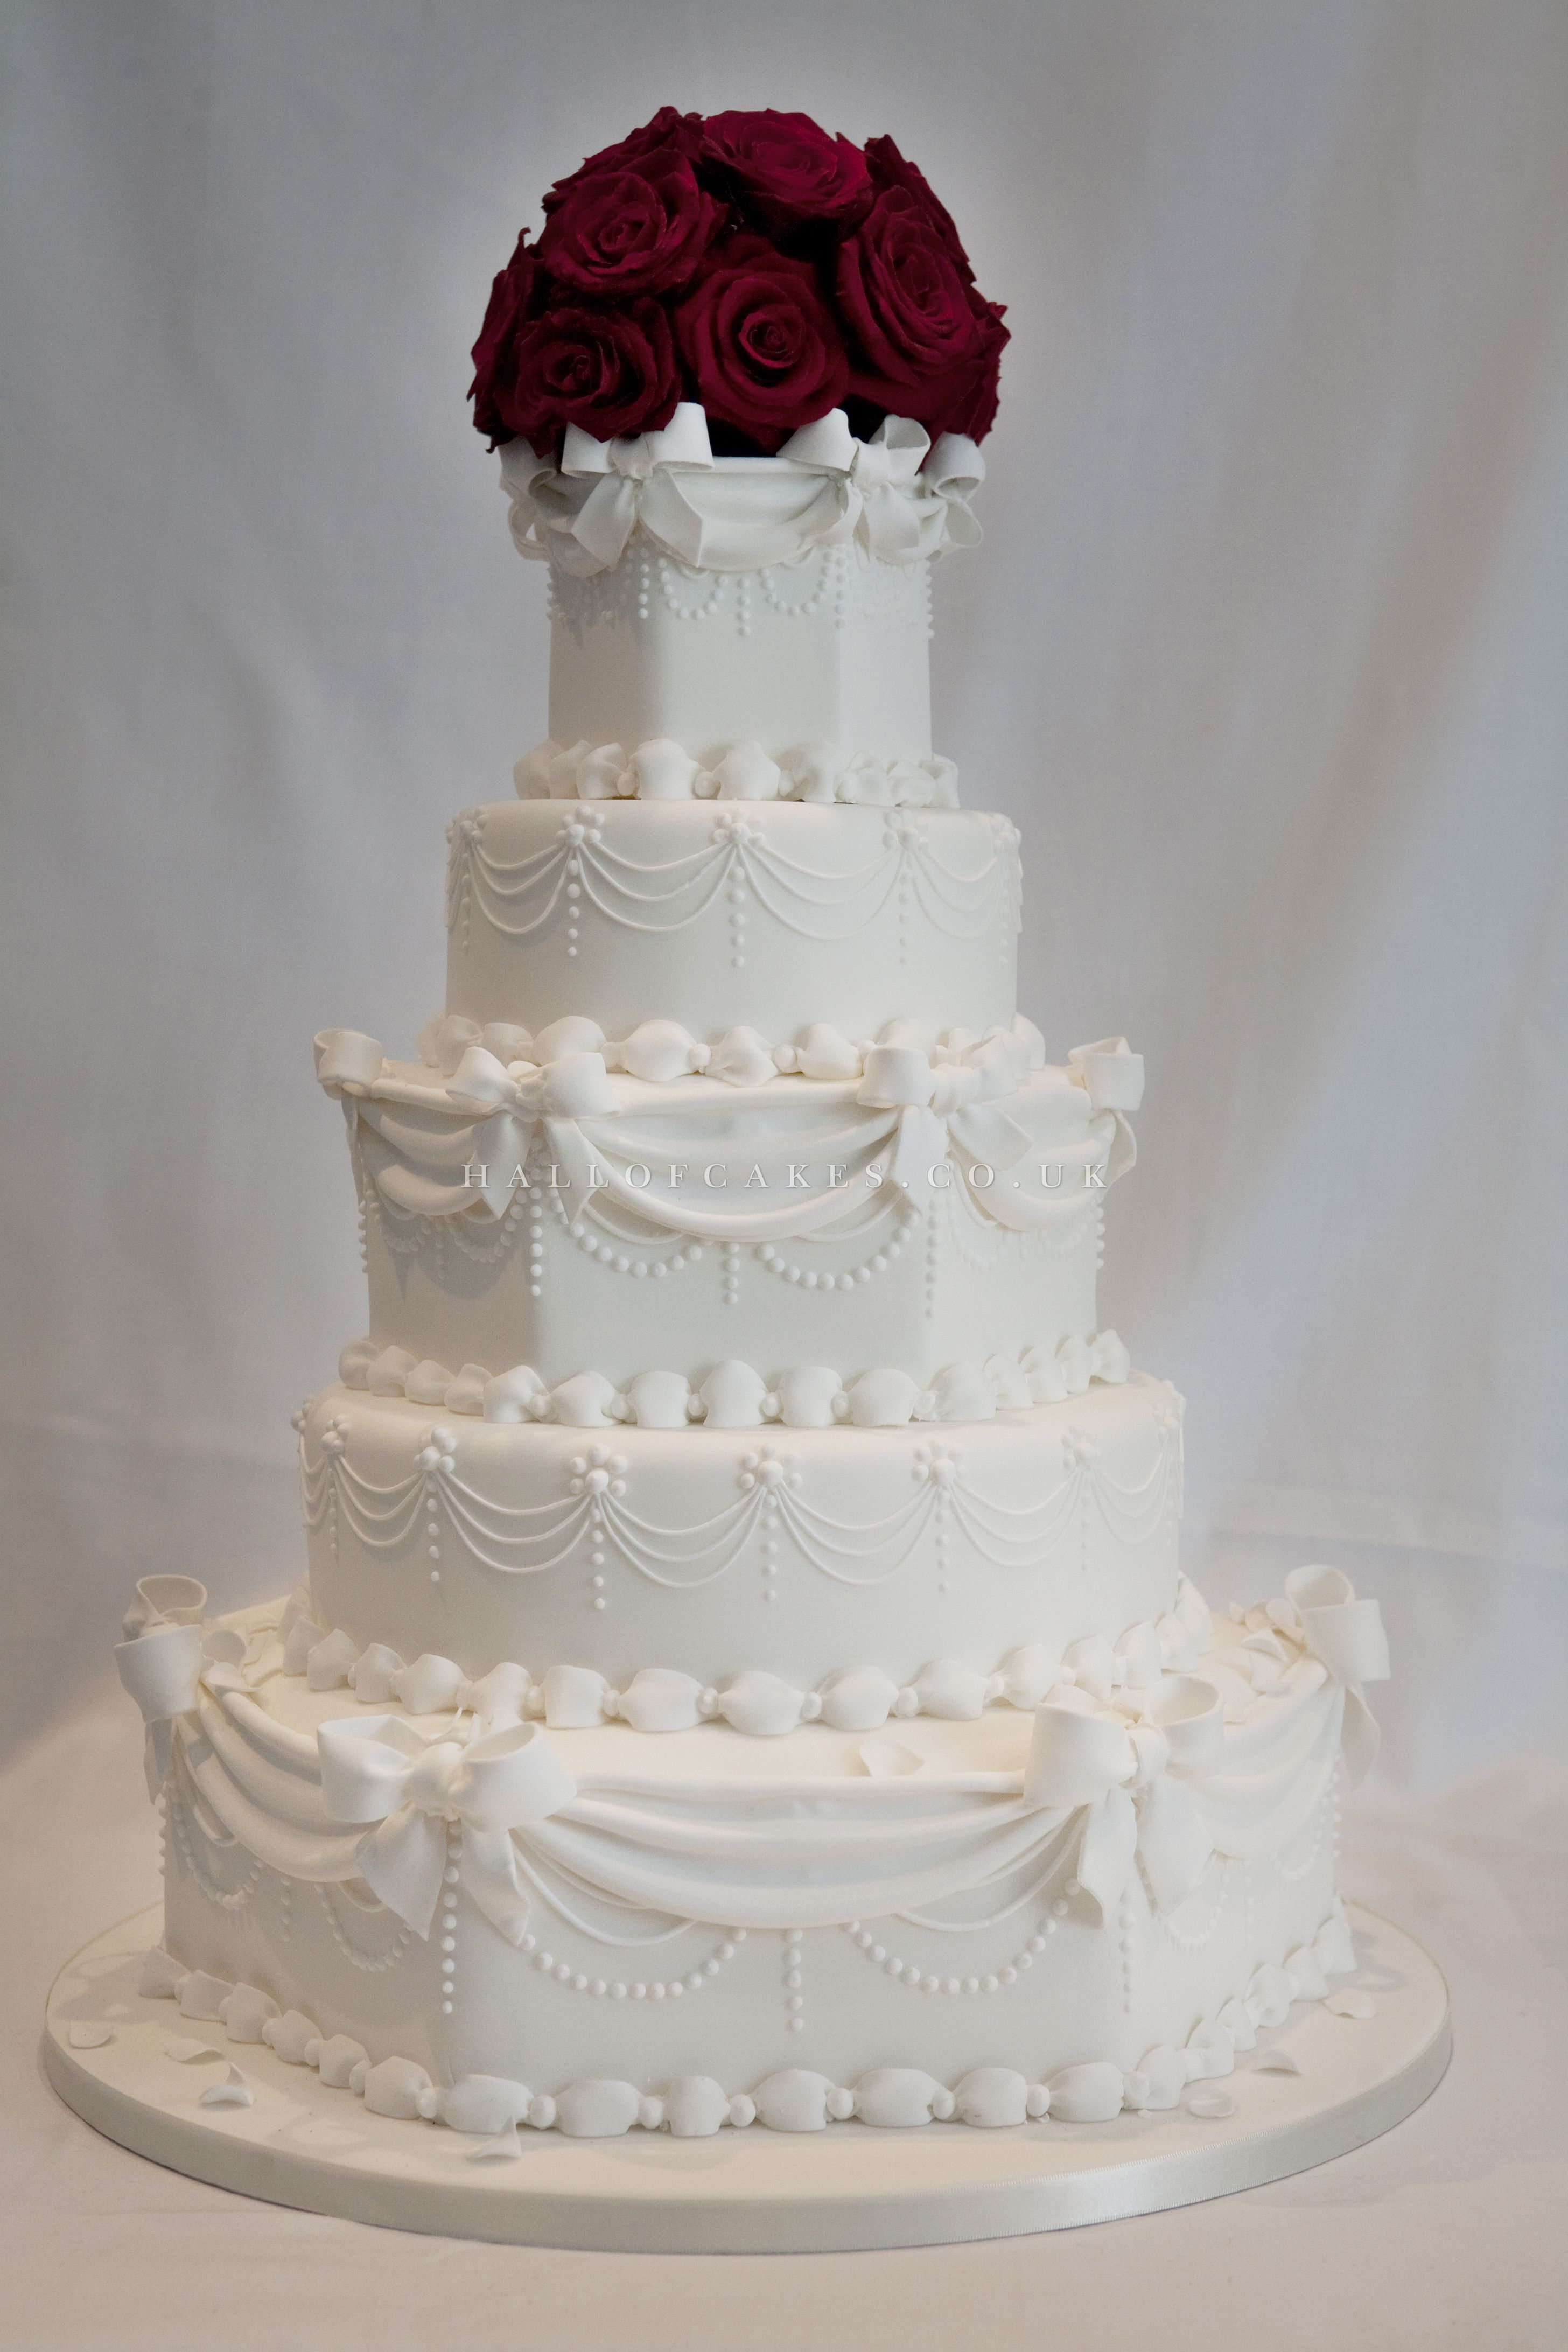 Wedding Cake gallery, including Victorian and Vintage Cakes | Hall ...